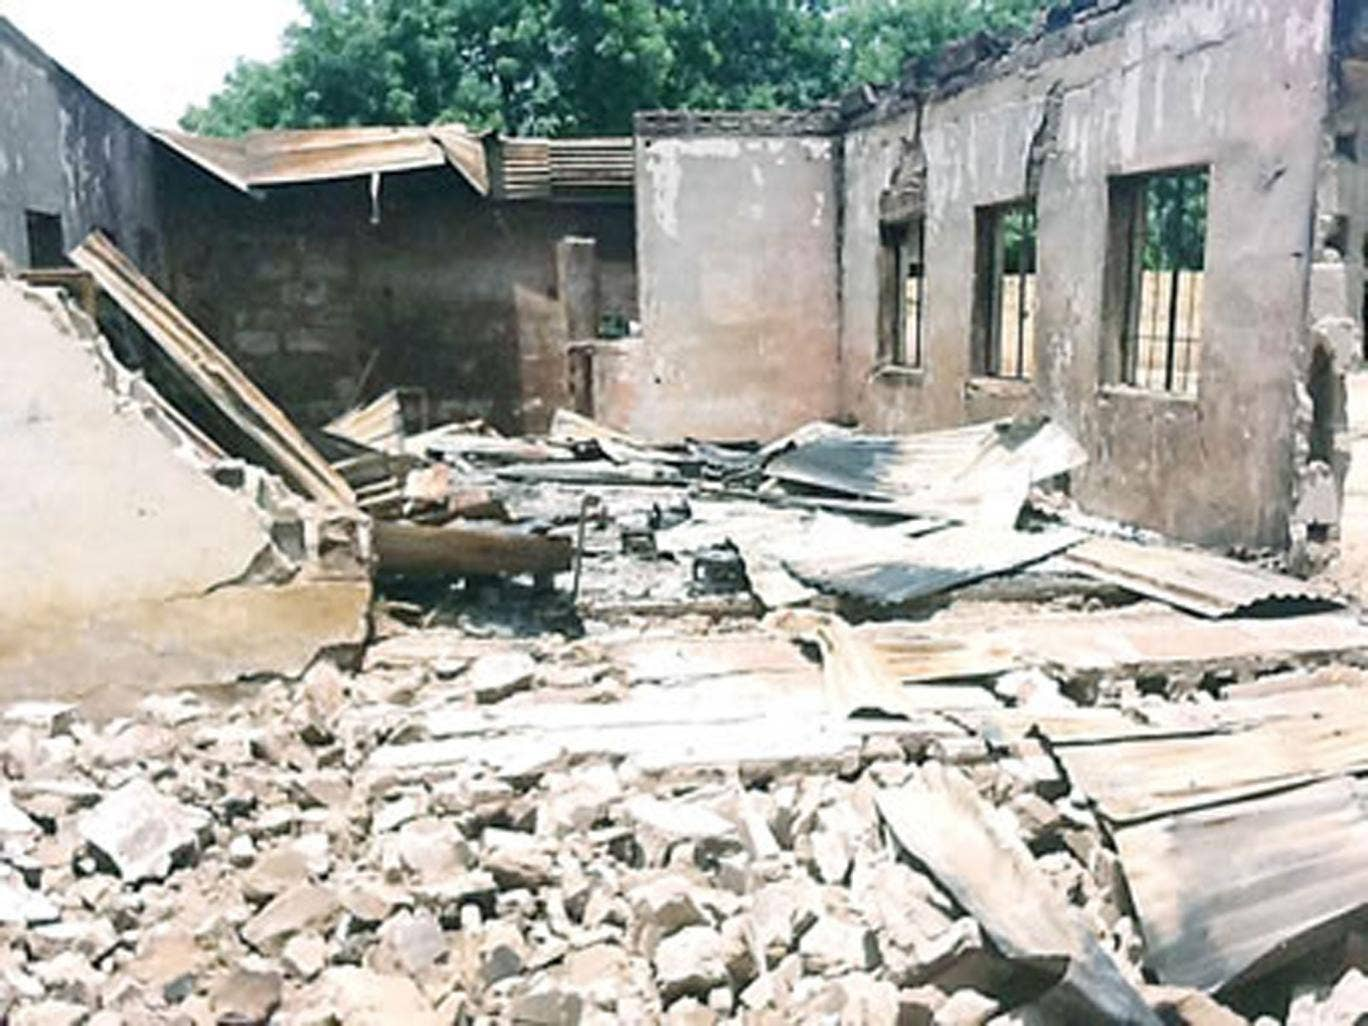 During the assault, Boko Haram Islamists marched students and staff into a dormitory, throwing explosive devices into the room with them. They then opened fire on the building and set it alight.